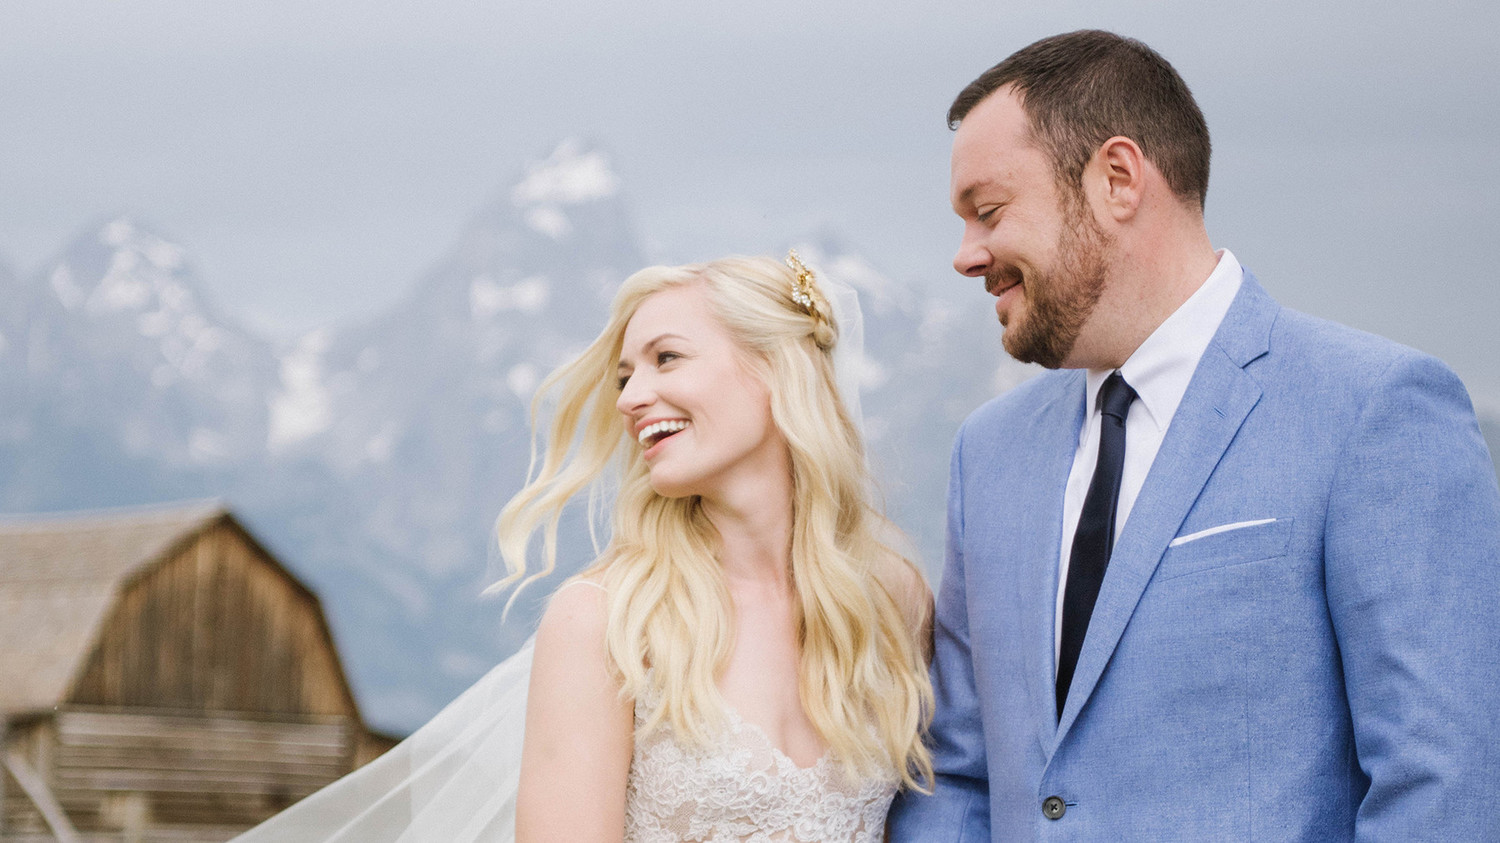 Beth Behrs and Michael Gladis Are Married! See Their ...